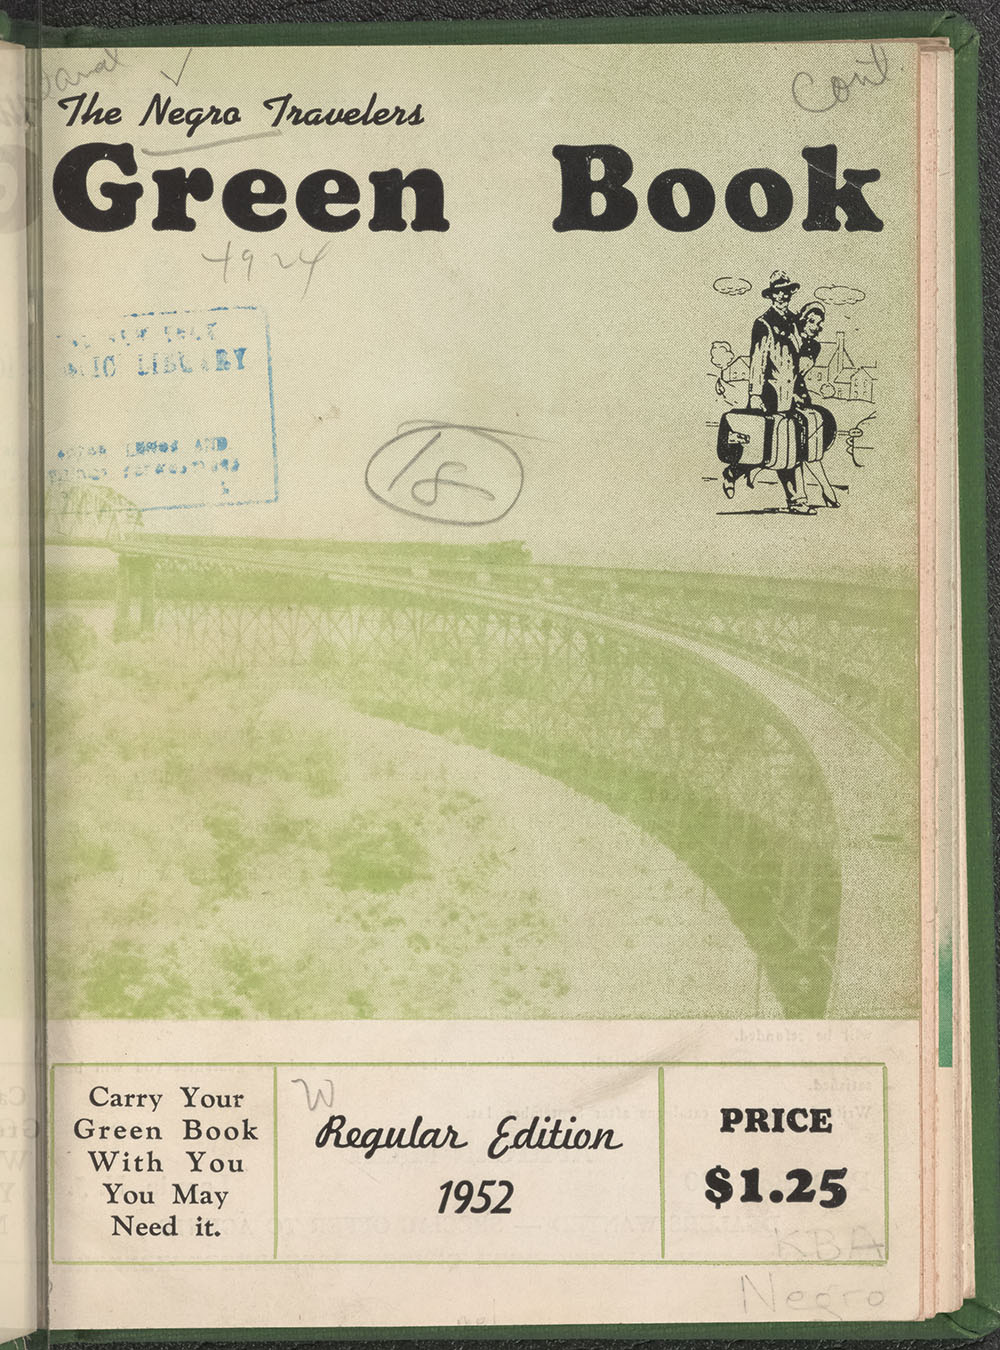 Route 66 - 16 Green Book